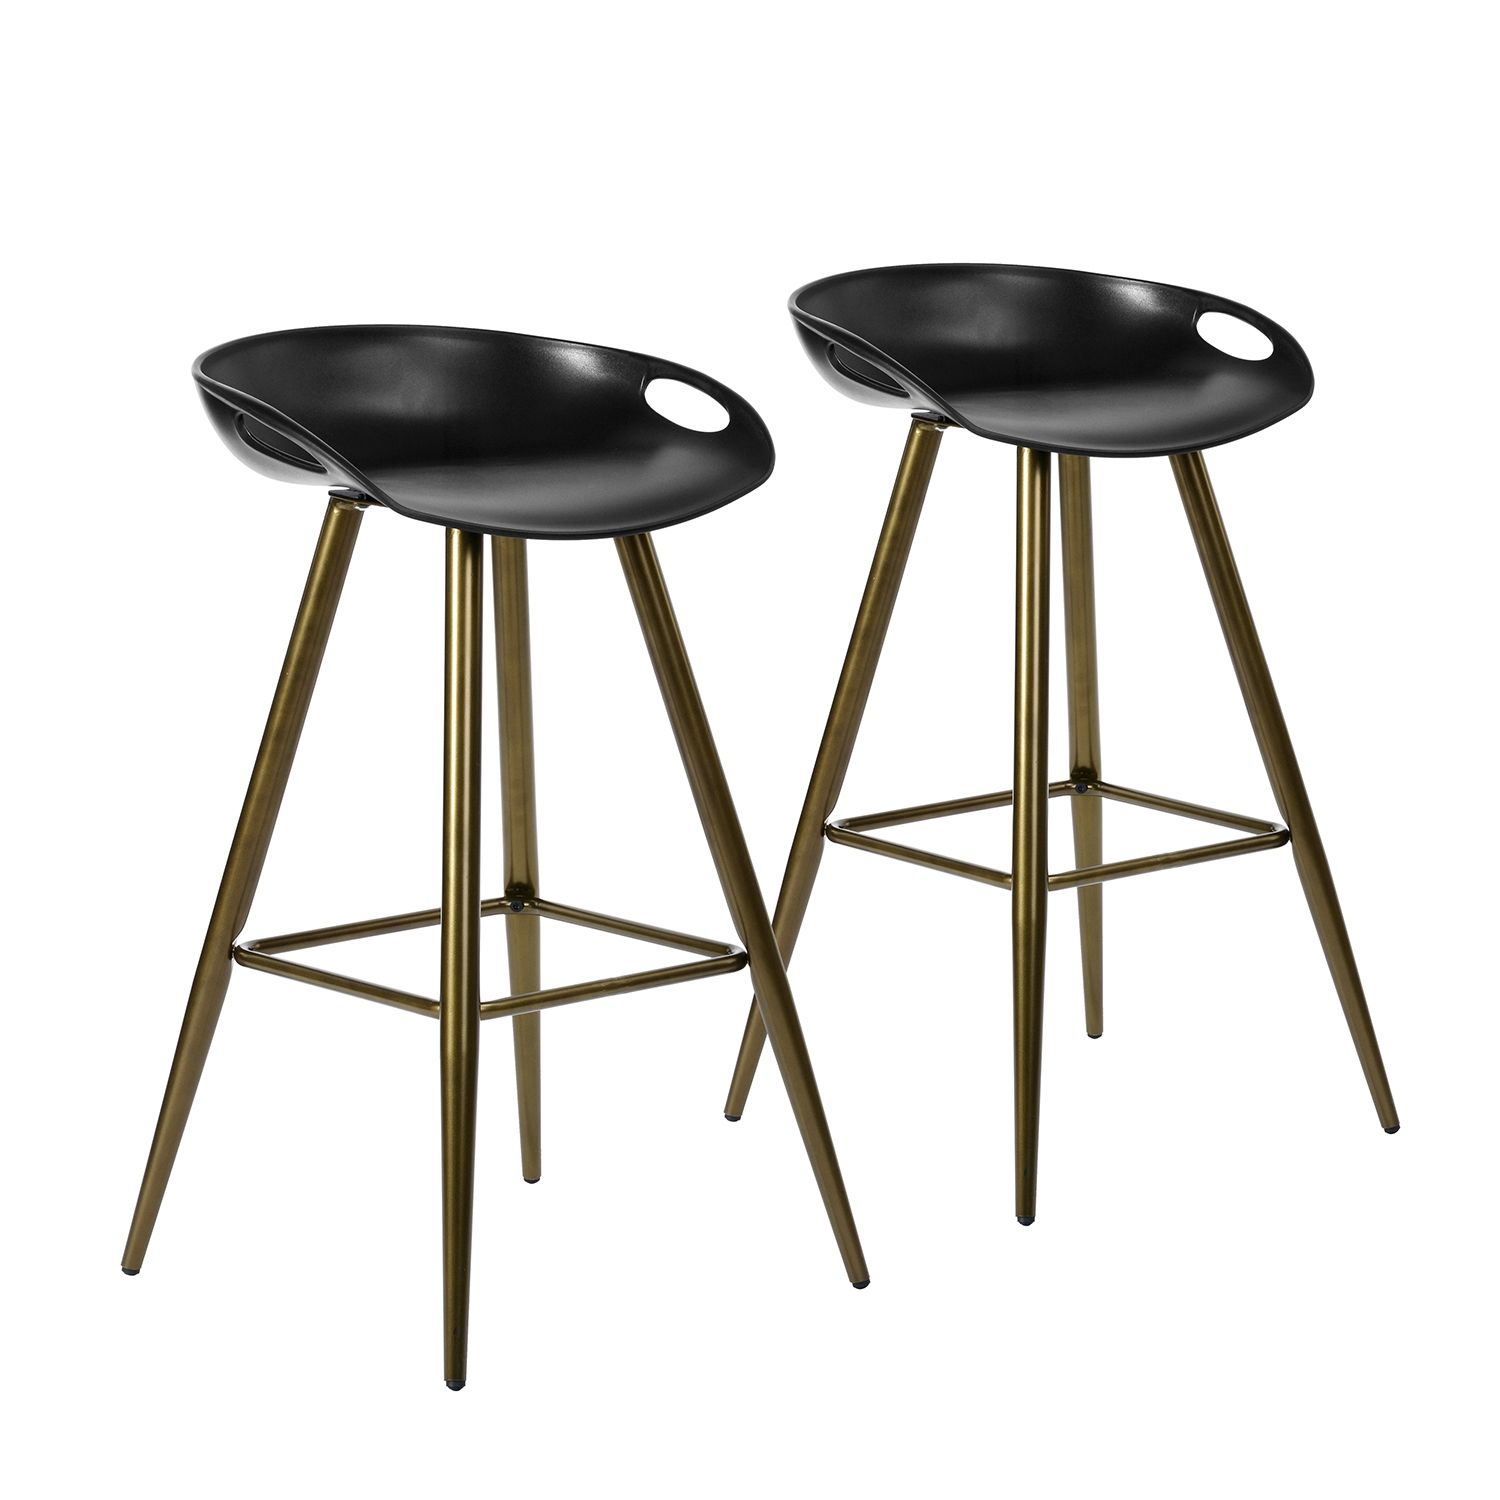 Low Back Fixed Height Counter Bar Stool Modern Design Bar Chair Set Of 2 Black Bronze With Images Bar Stools Modern Bar Stools